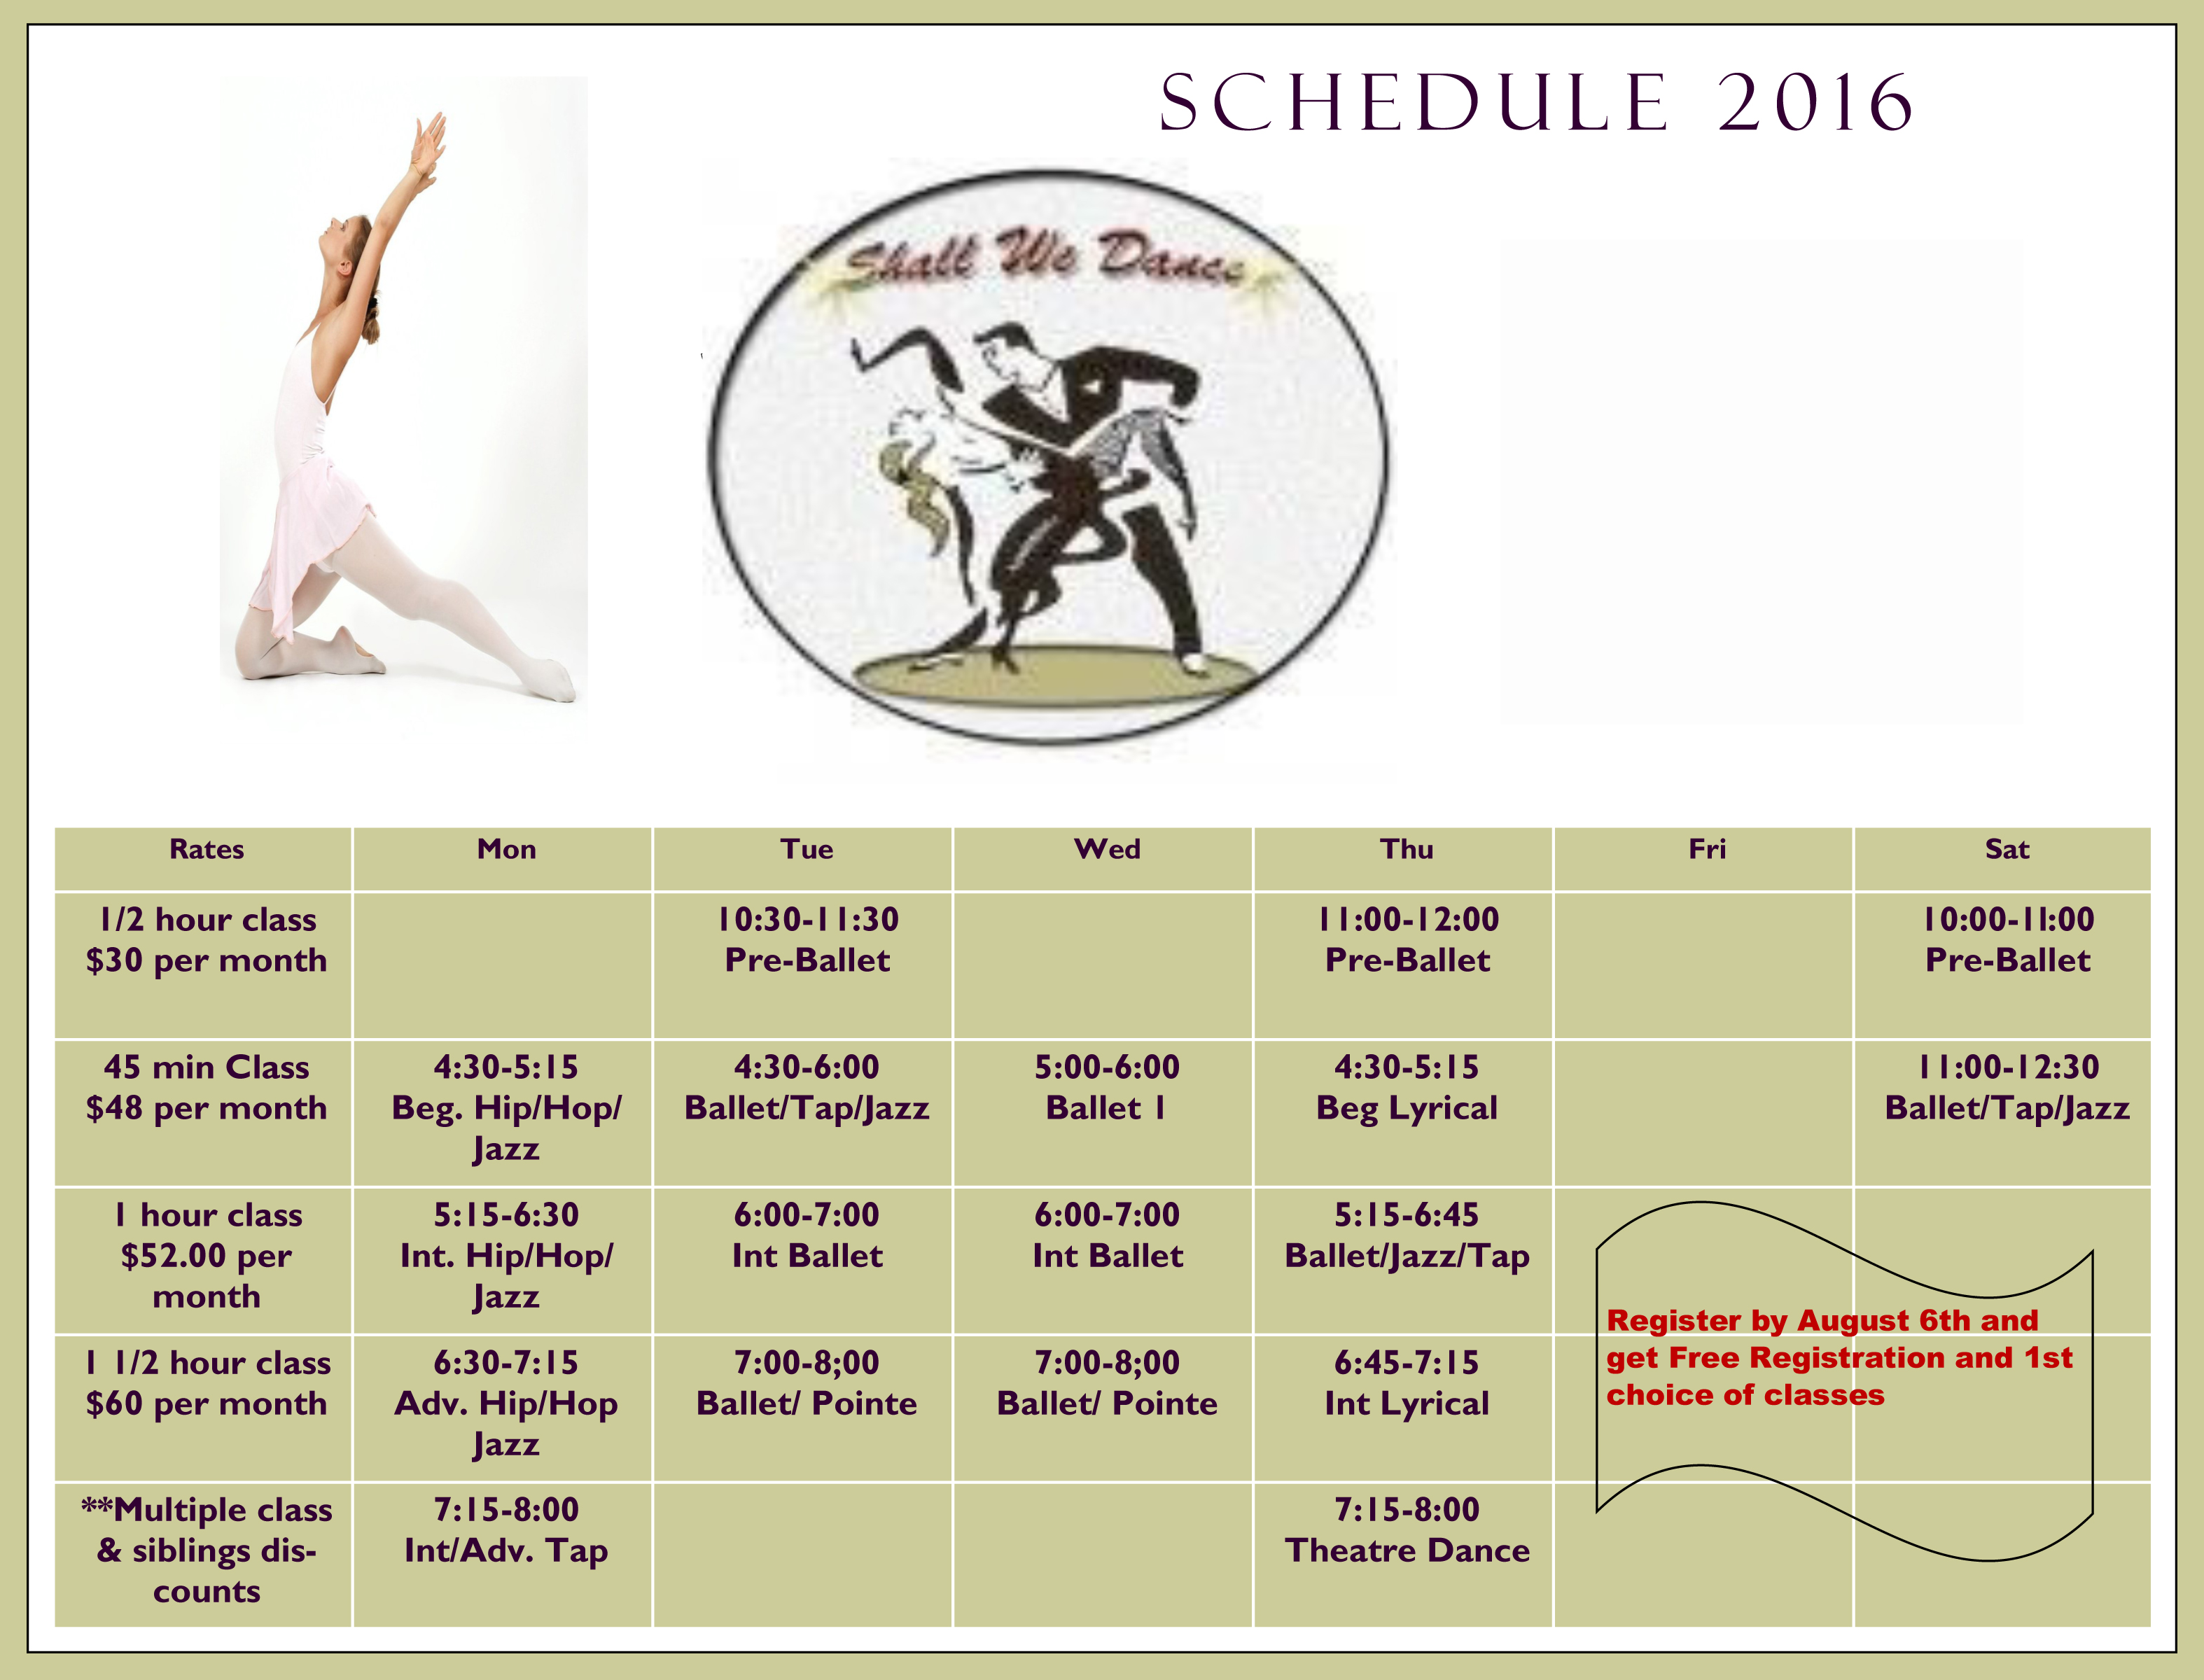 shall we dance schedule